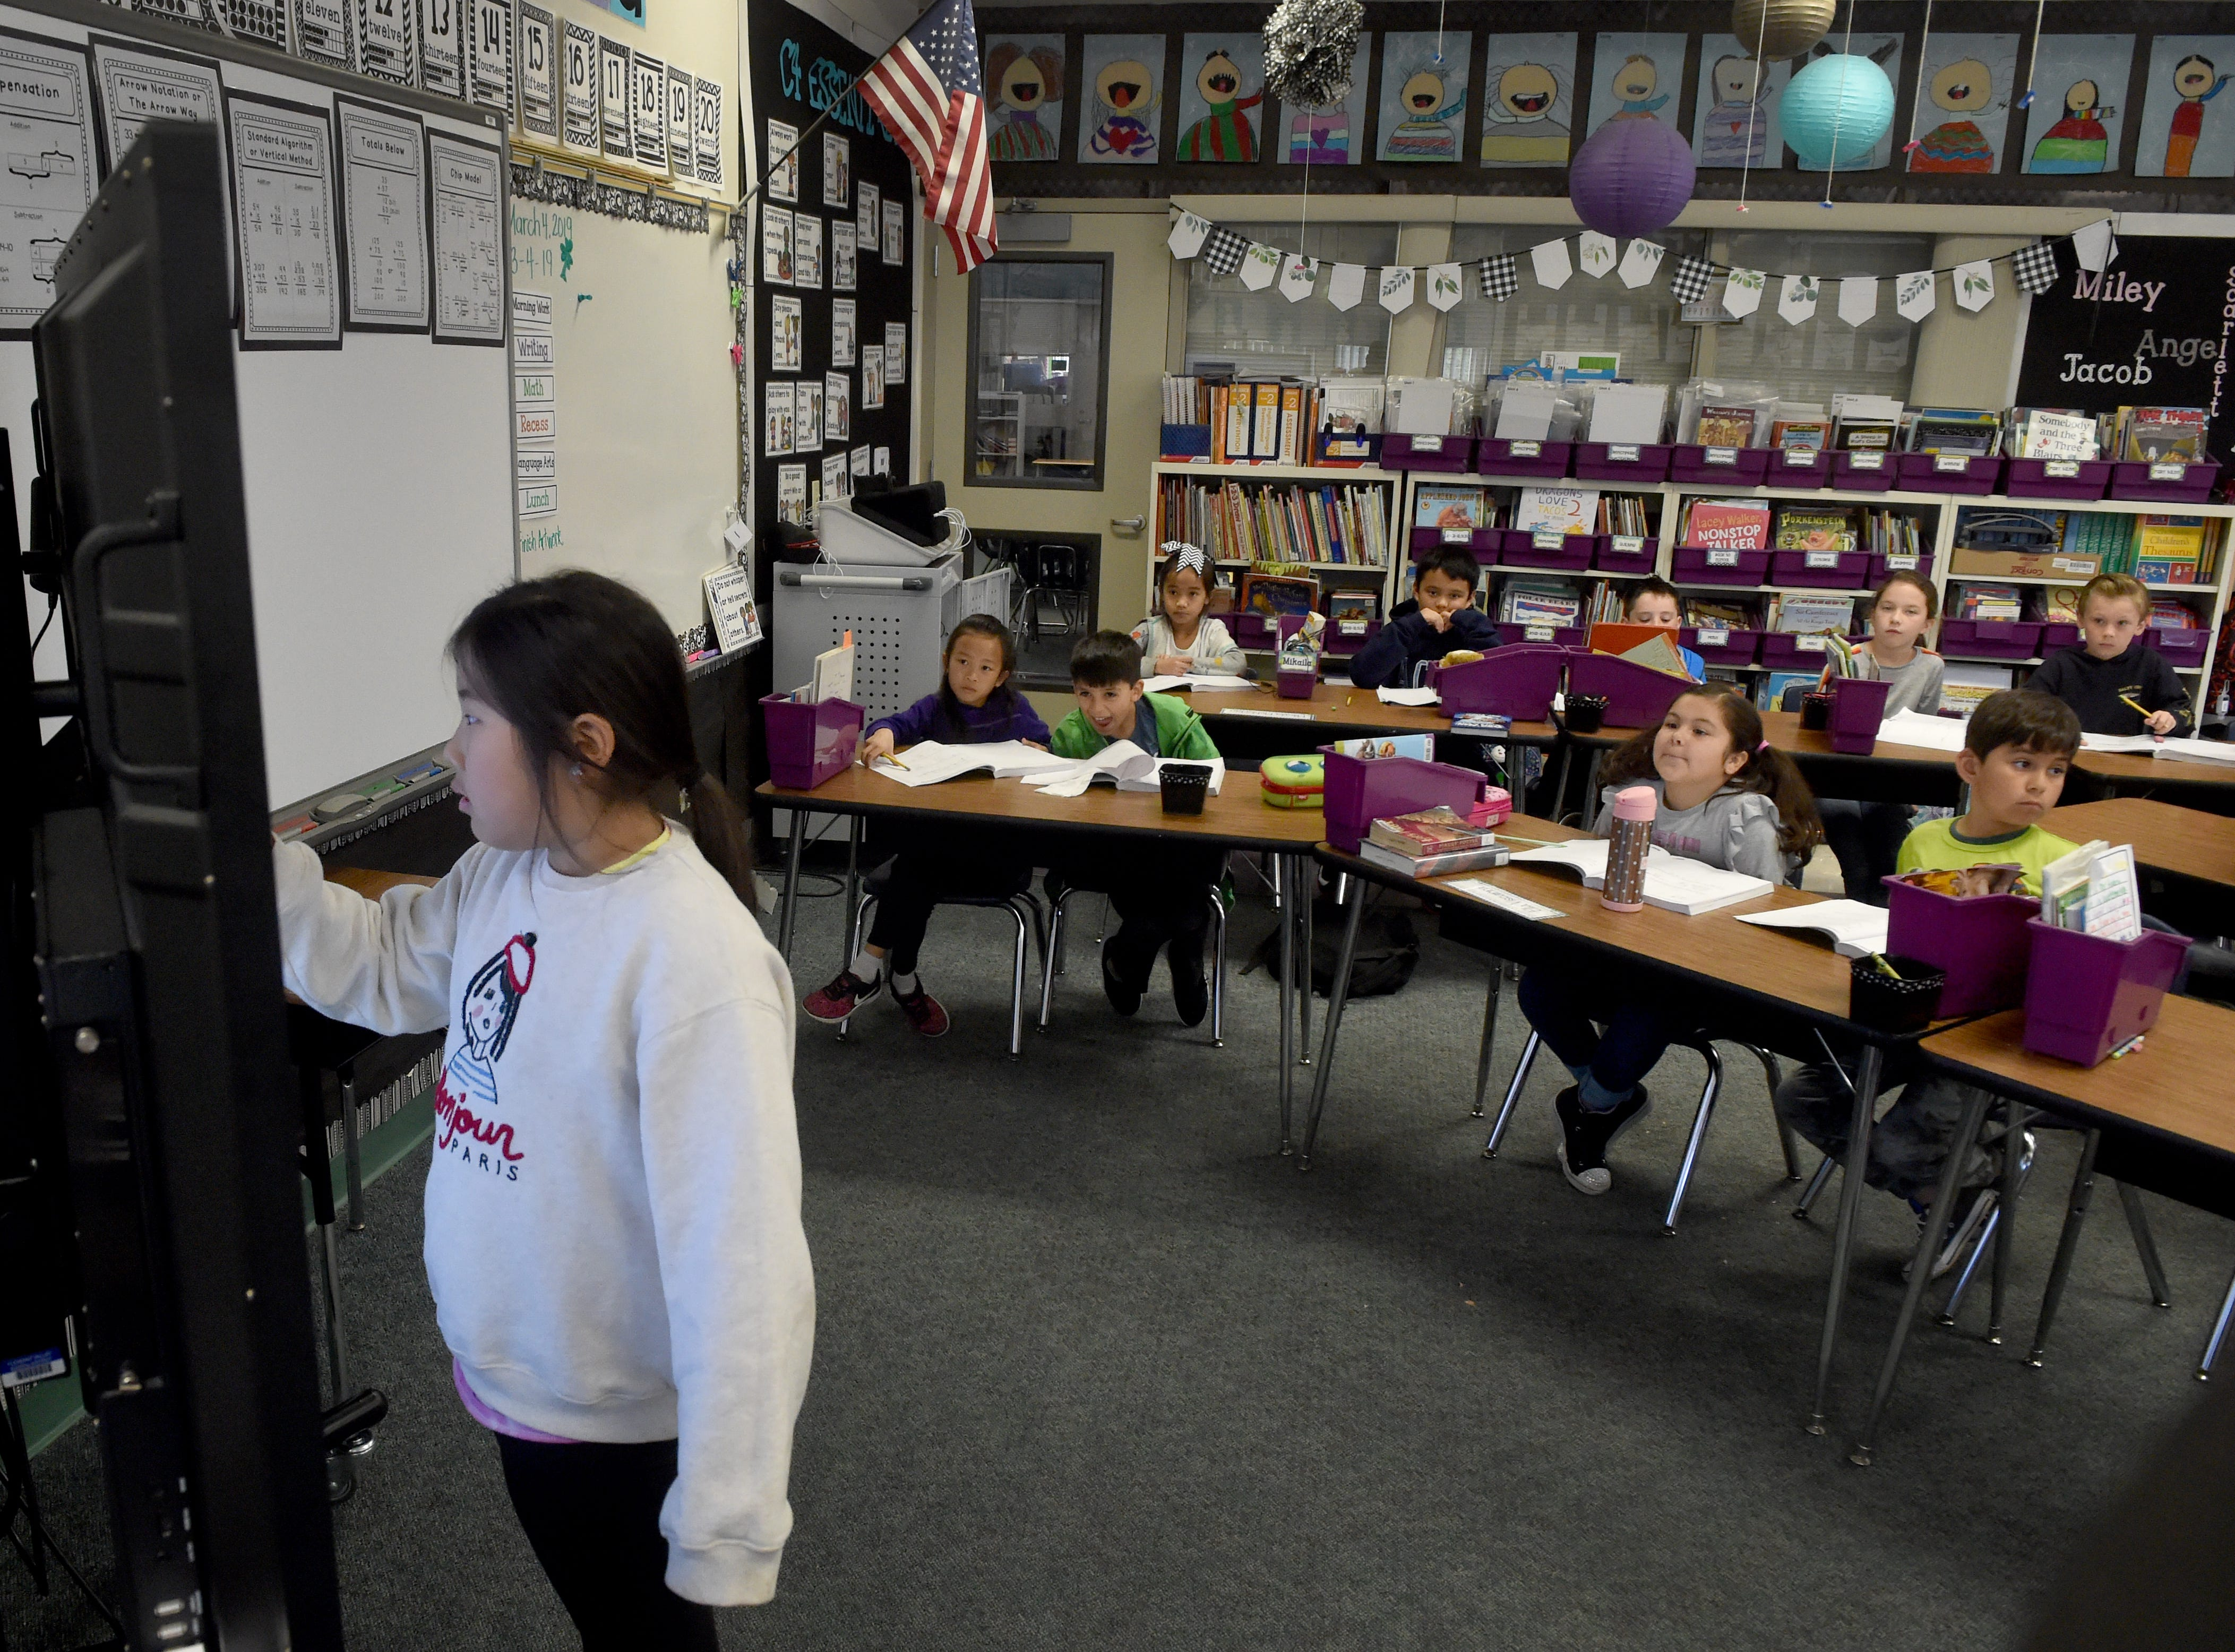 Hailey Song, a second-grader at Mariposa School in Camarillo, uses a new touch-screen display during class on a recent Monday. The Pleasant Valley School District is using funds from Measure C to purchase technology for the classrooms.